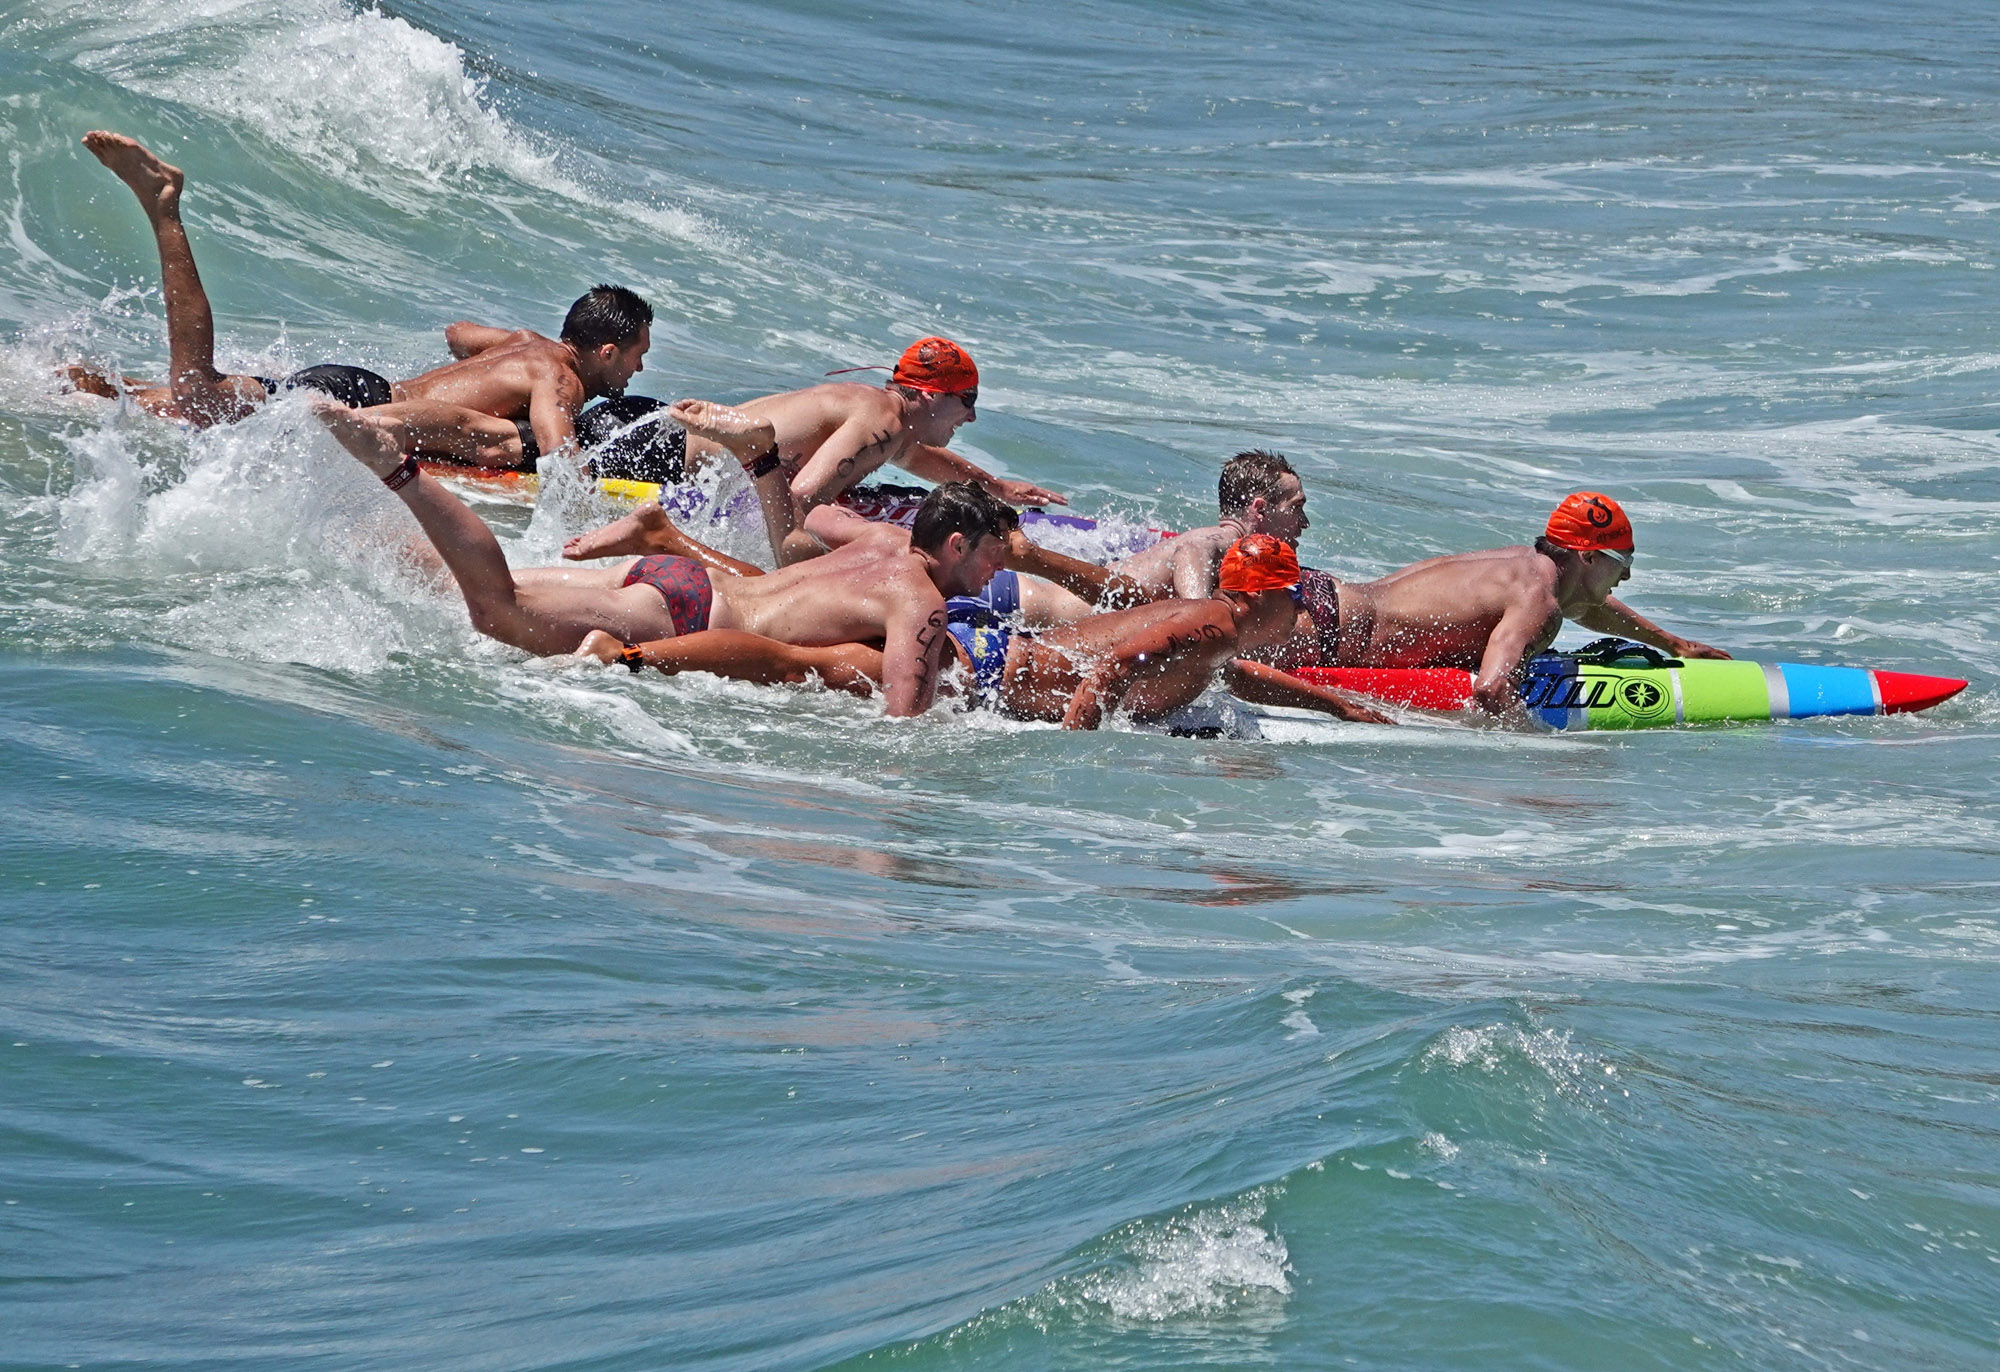 Three two-man paddle teams appear to be knotted up as they race for the finish line.' Photo: Fred Swegles